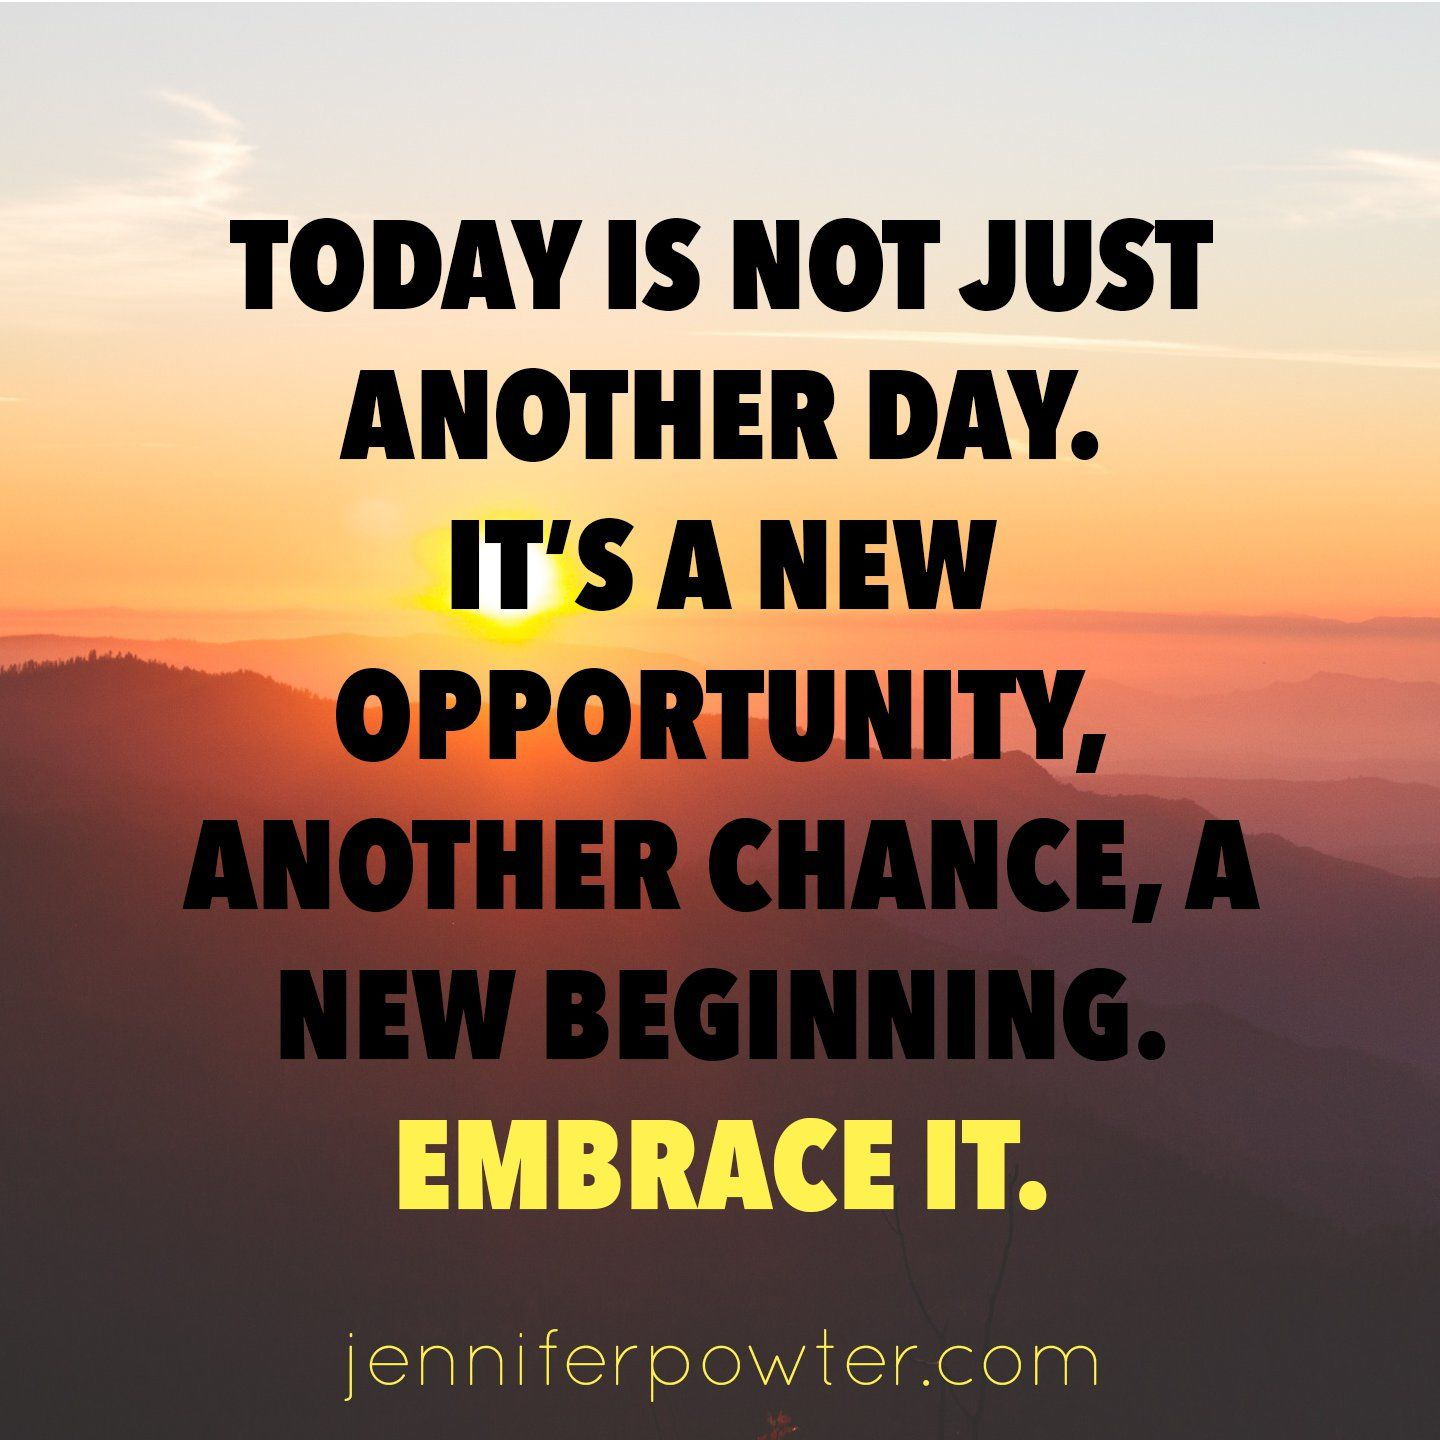 Today is not just another day. It's a new opportunity